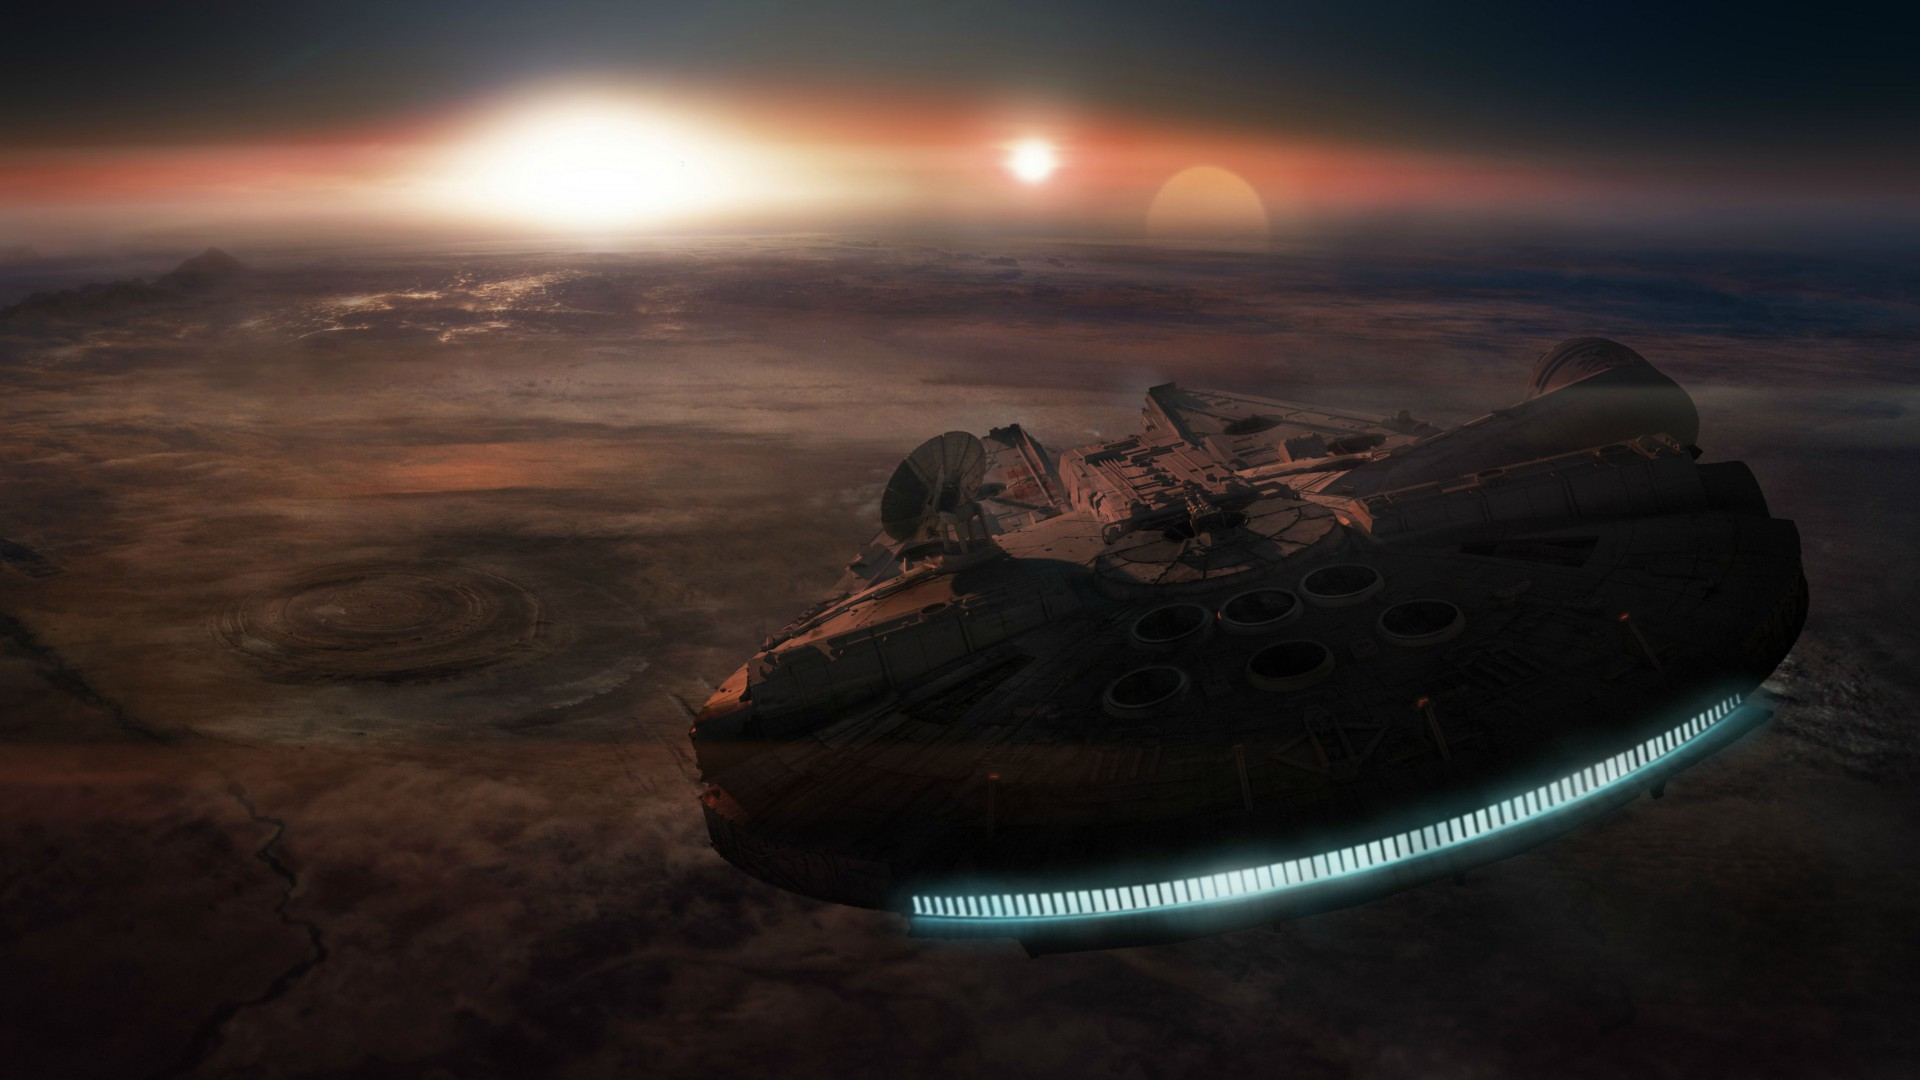 Star Wars Hd Desktop Wallpaper Posted By Ryan Simpson